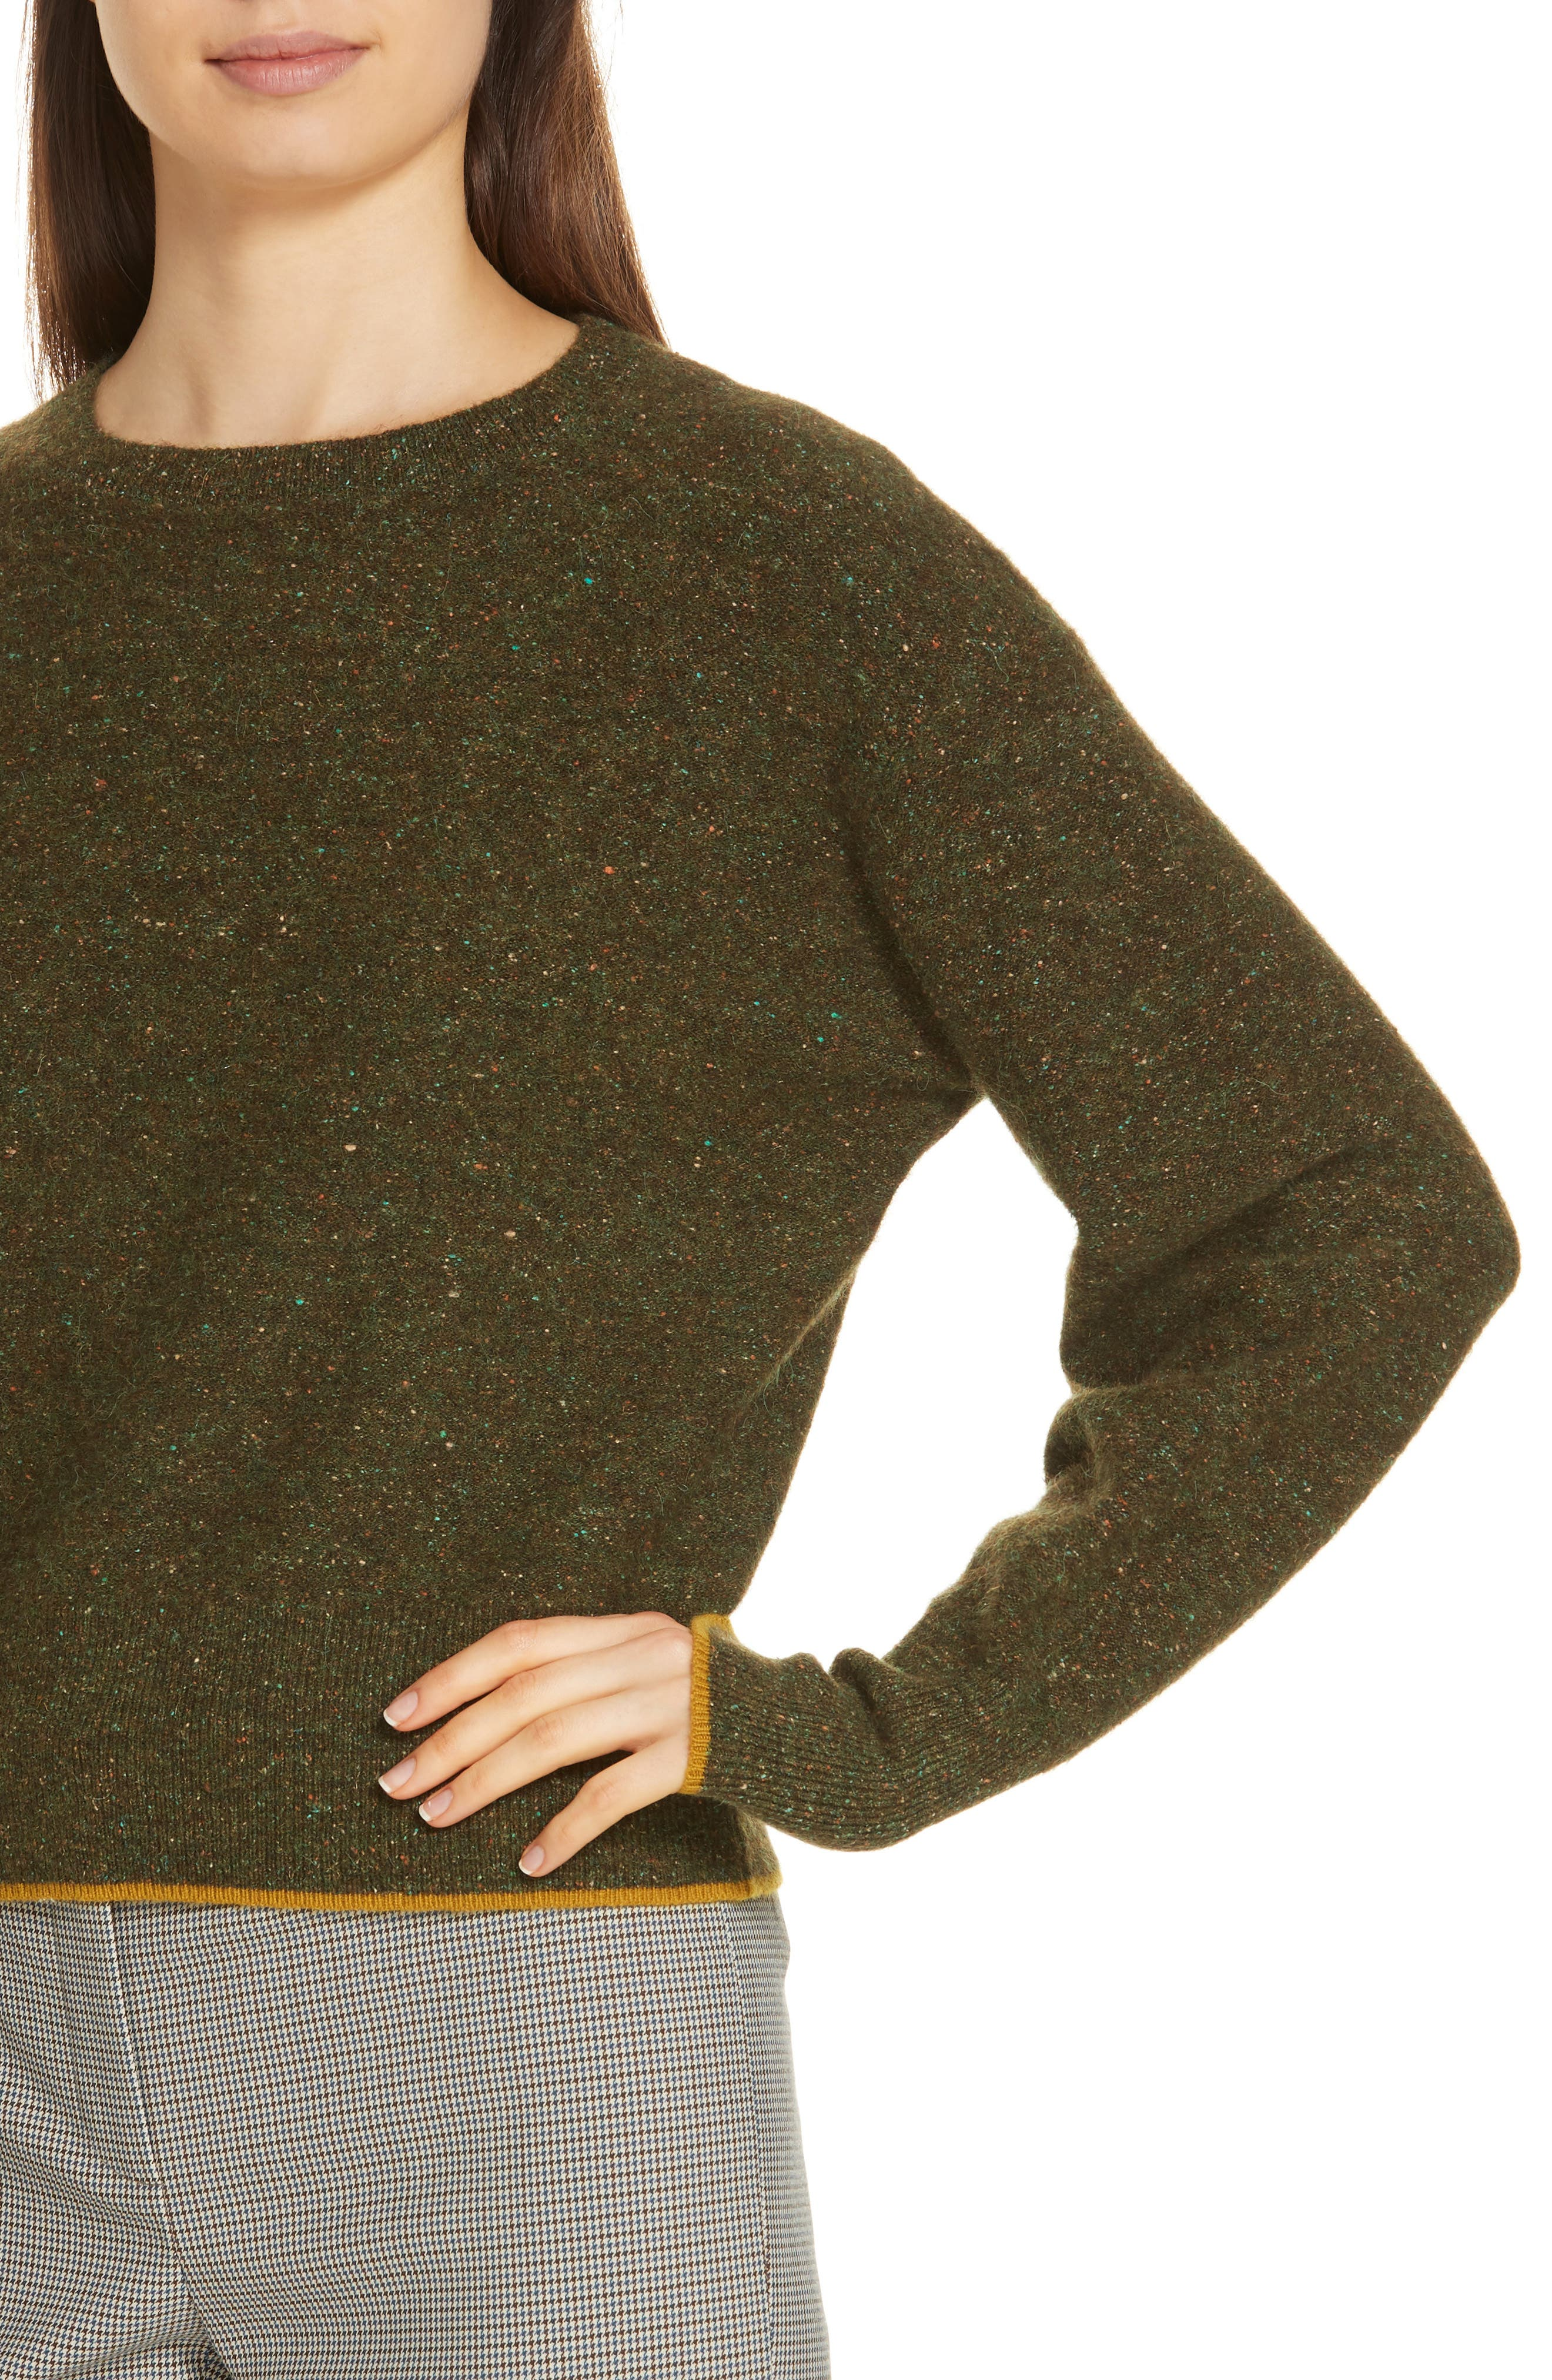 Tweed Knit Sweater,                             Alternate thumbnail 4, color,                             310